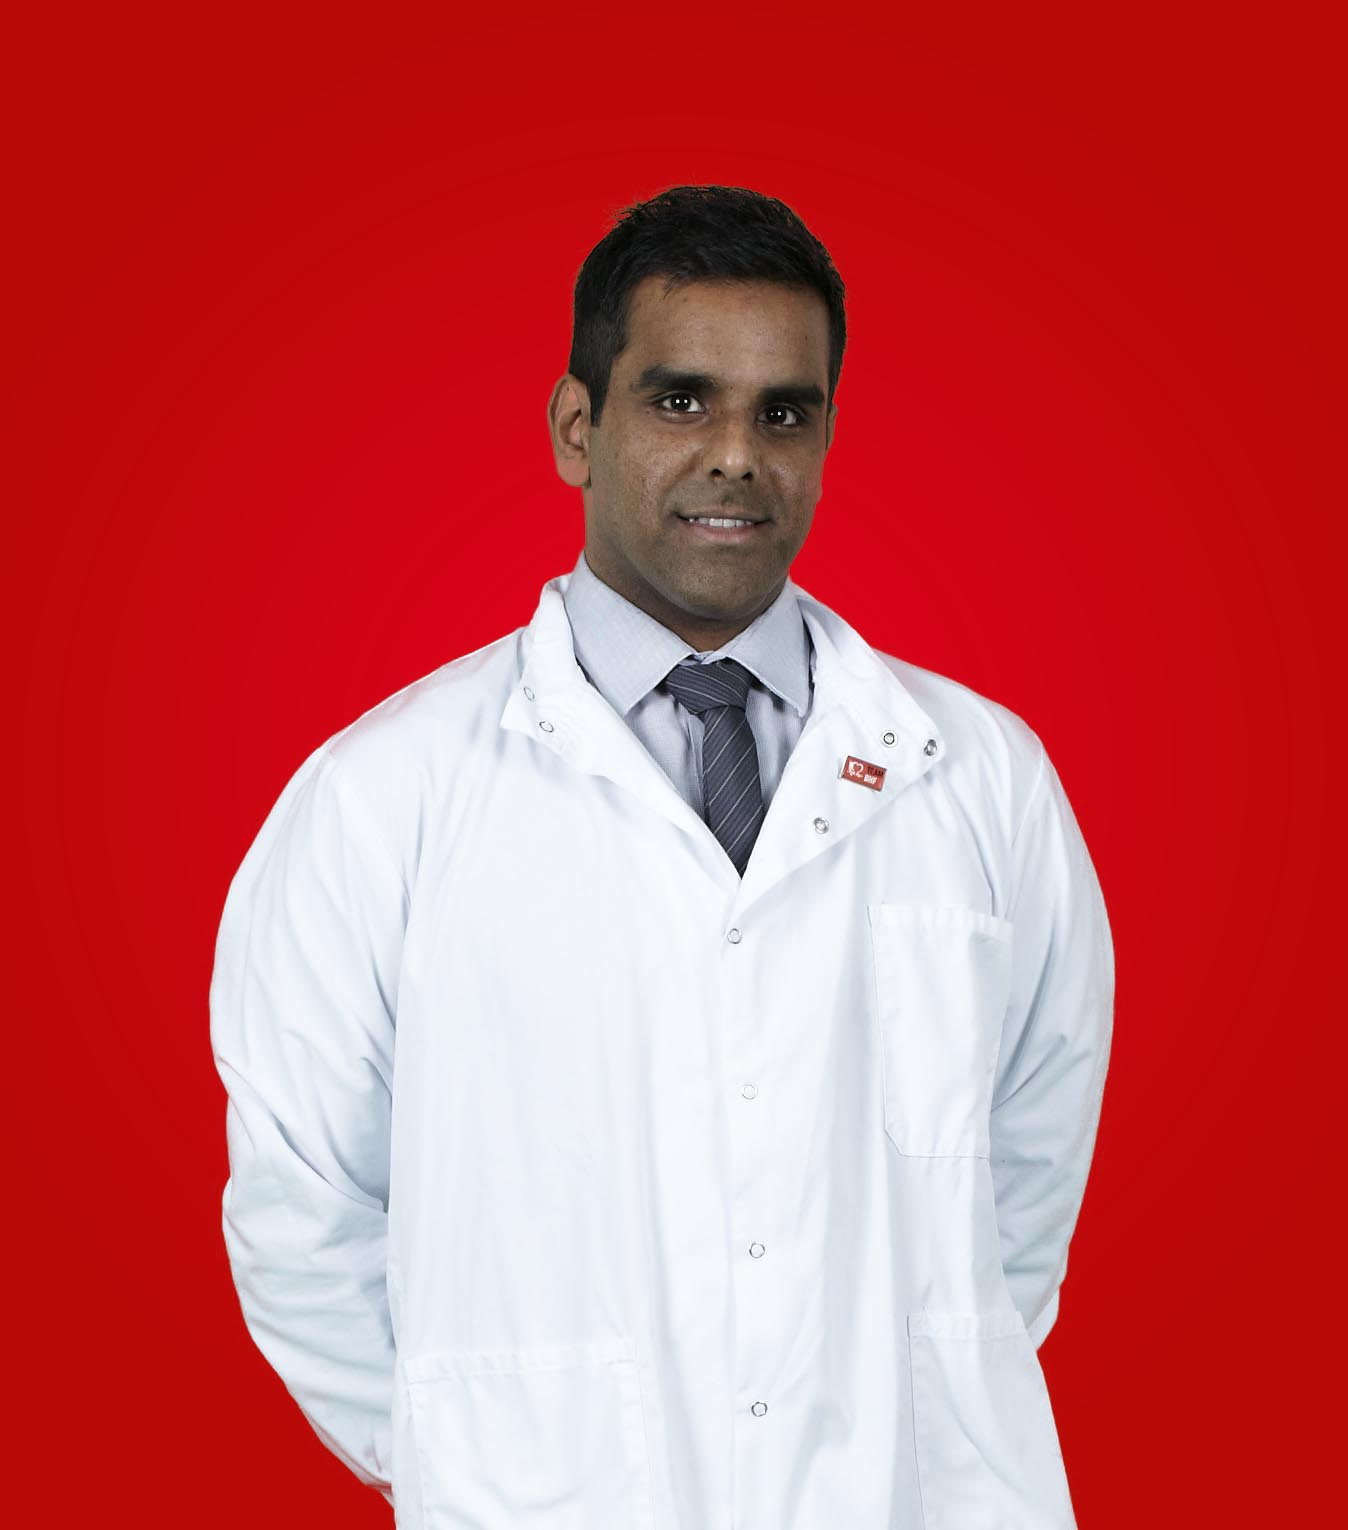 Q&A with Dr Afzal Sohaib, a British Heart Foundation (BHF) Clinical Research Training Fellow working in London and a keen runner.